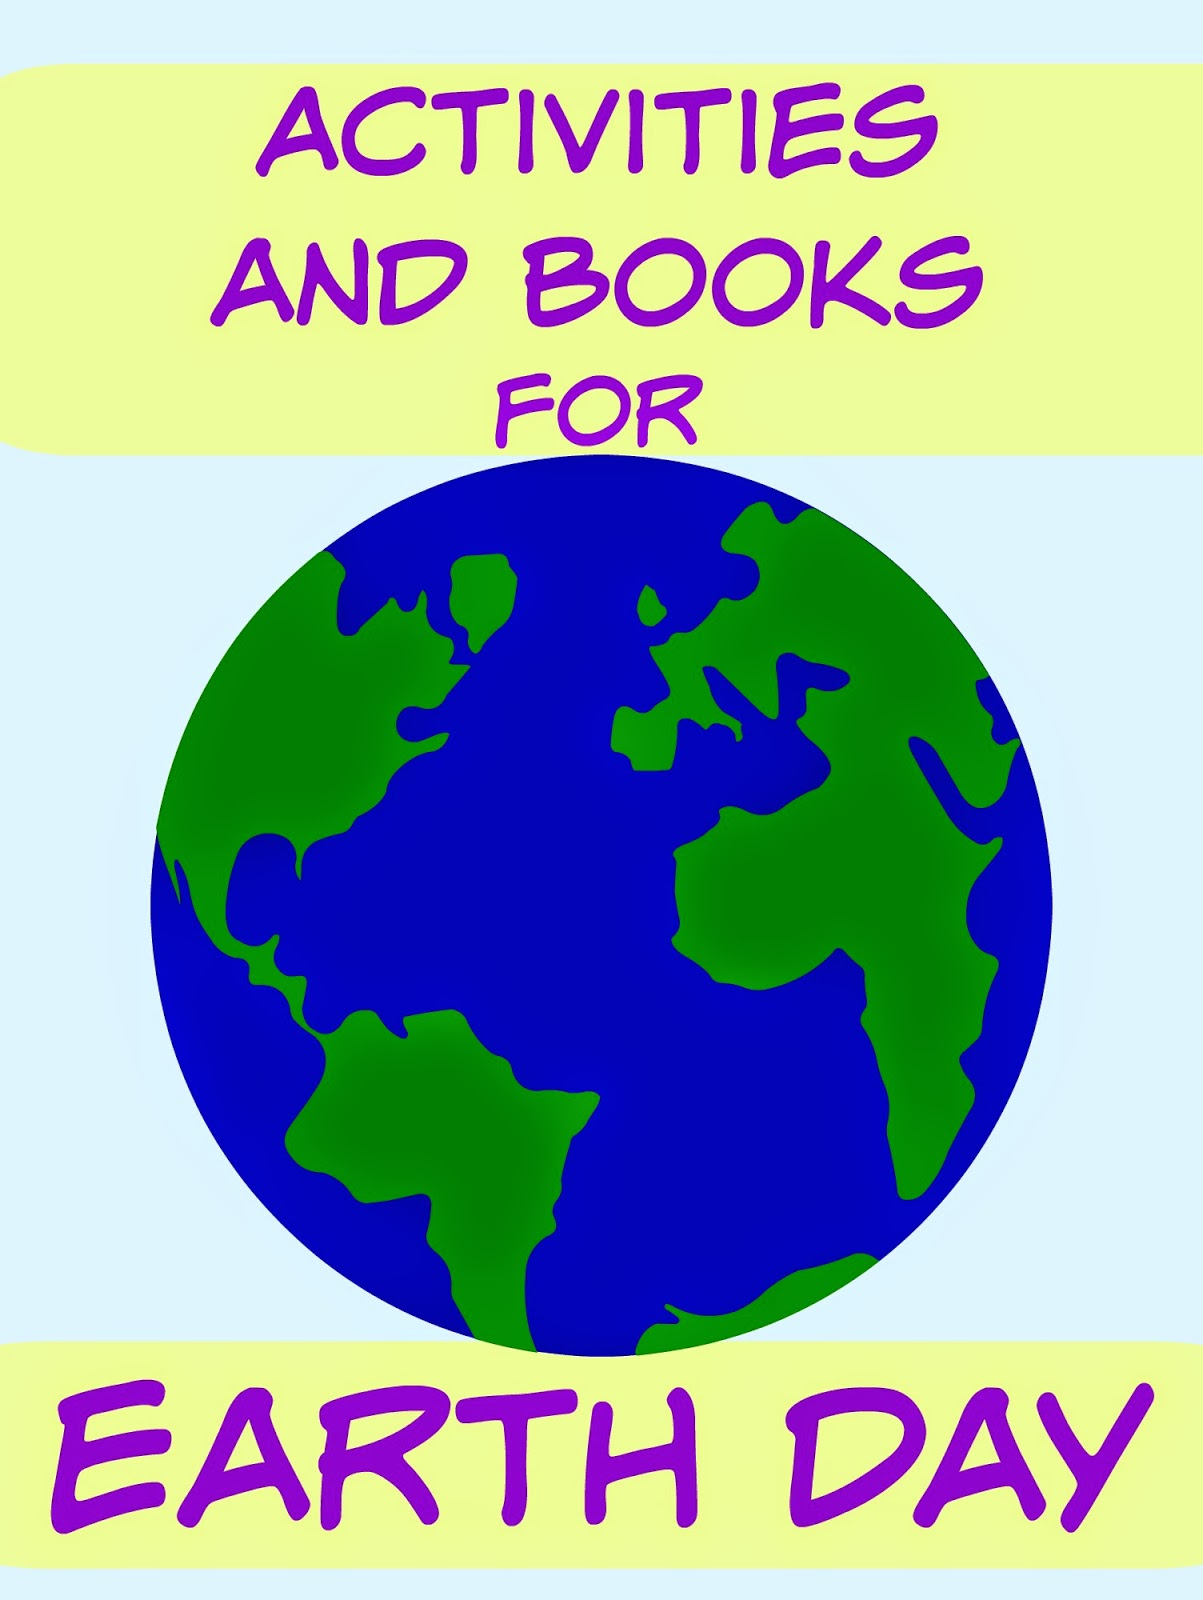 Earth Day Activities and Books at Mom's Library